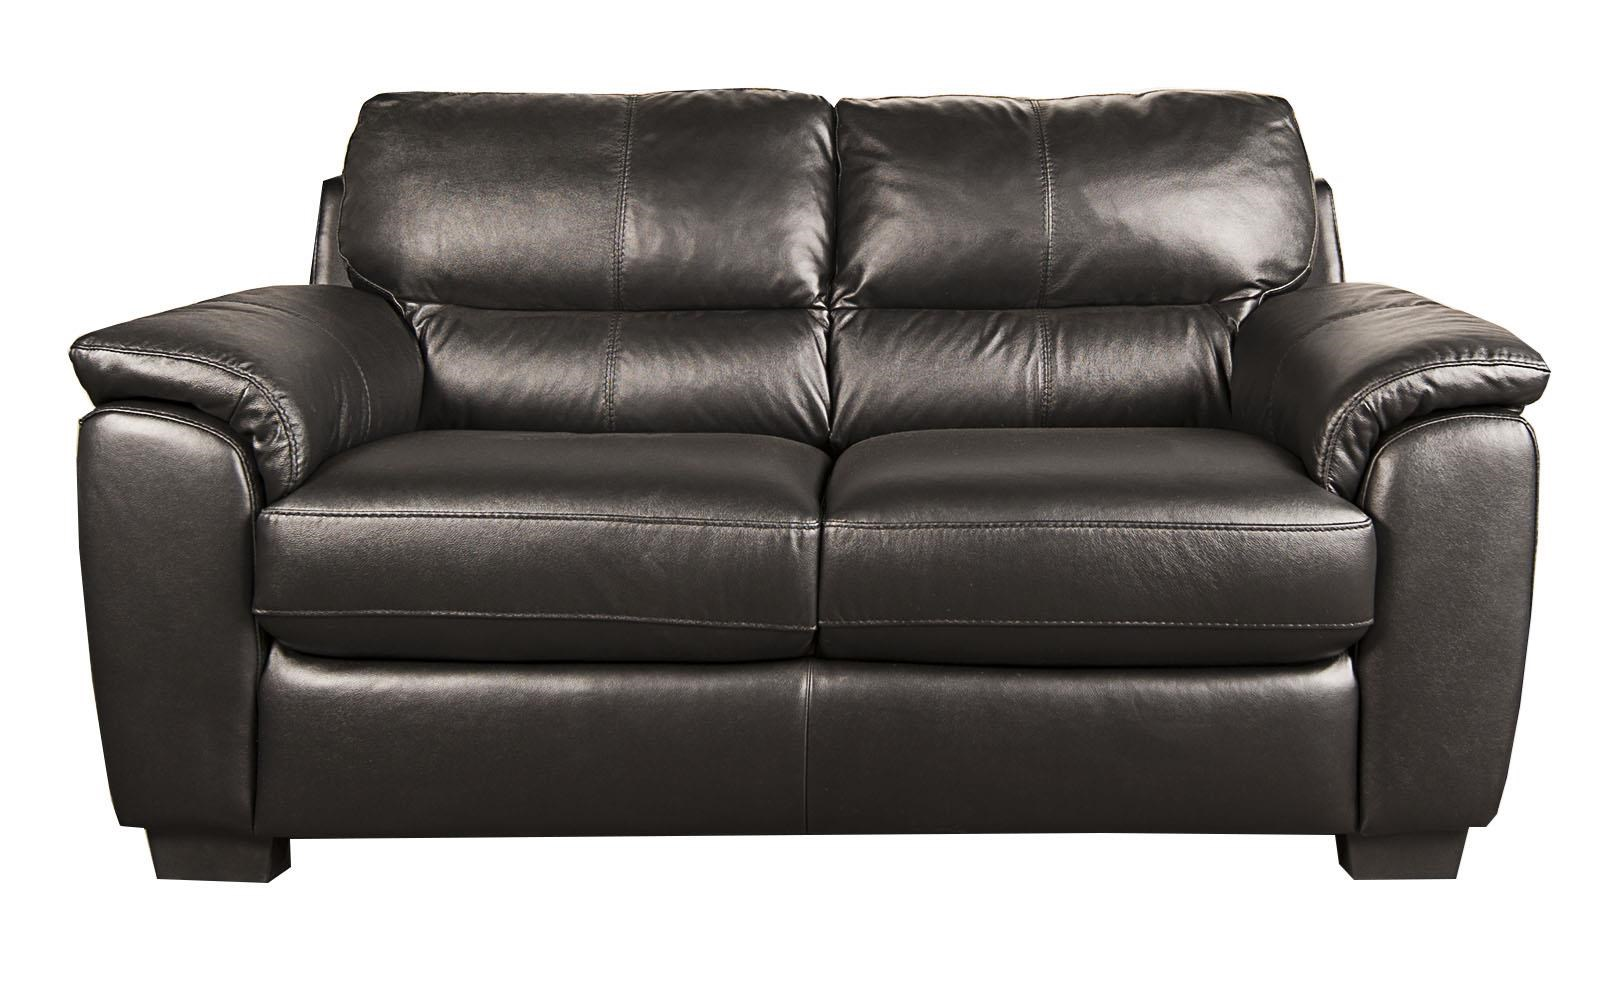 Holt 100% Leather Loveseat